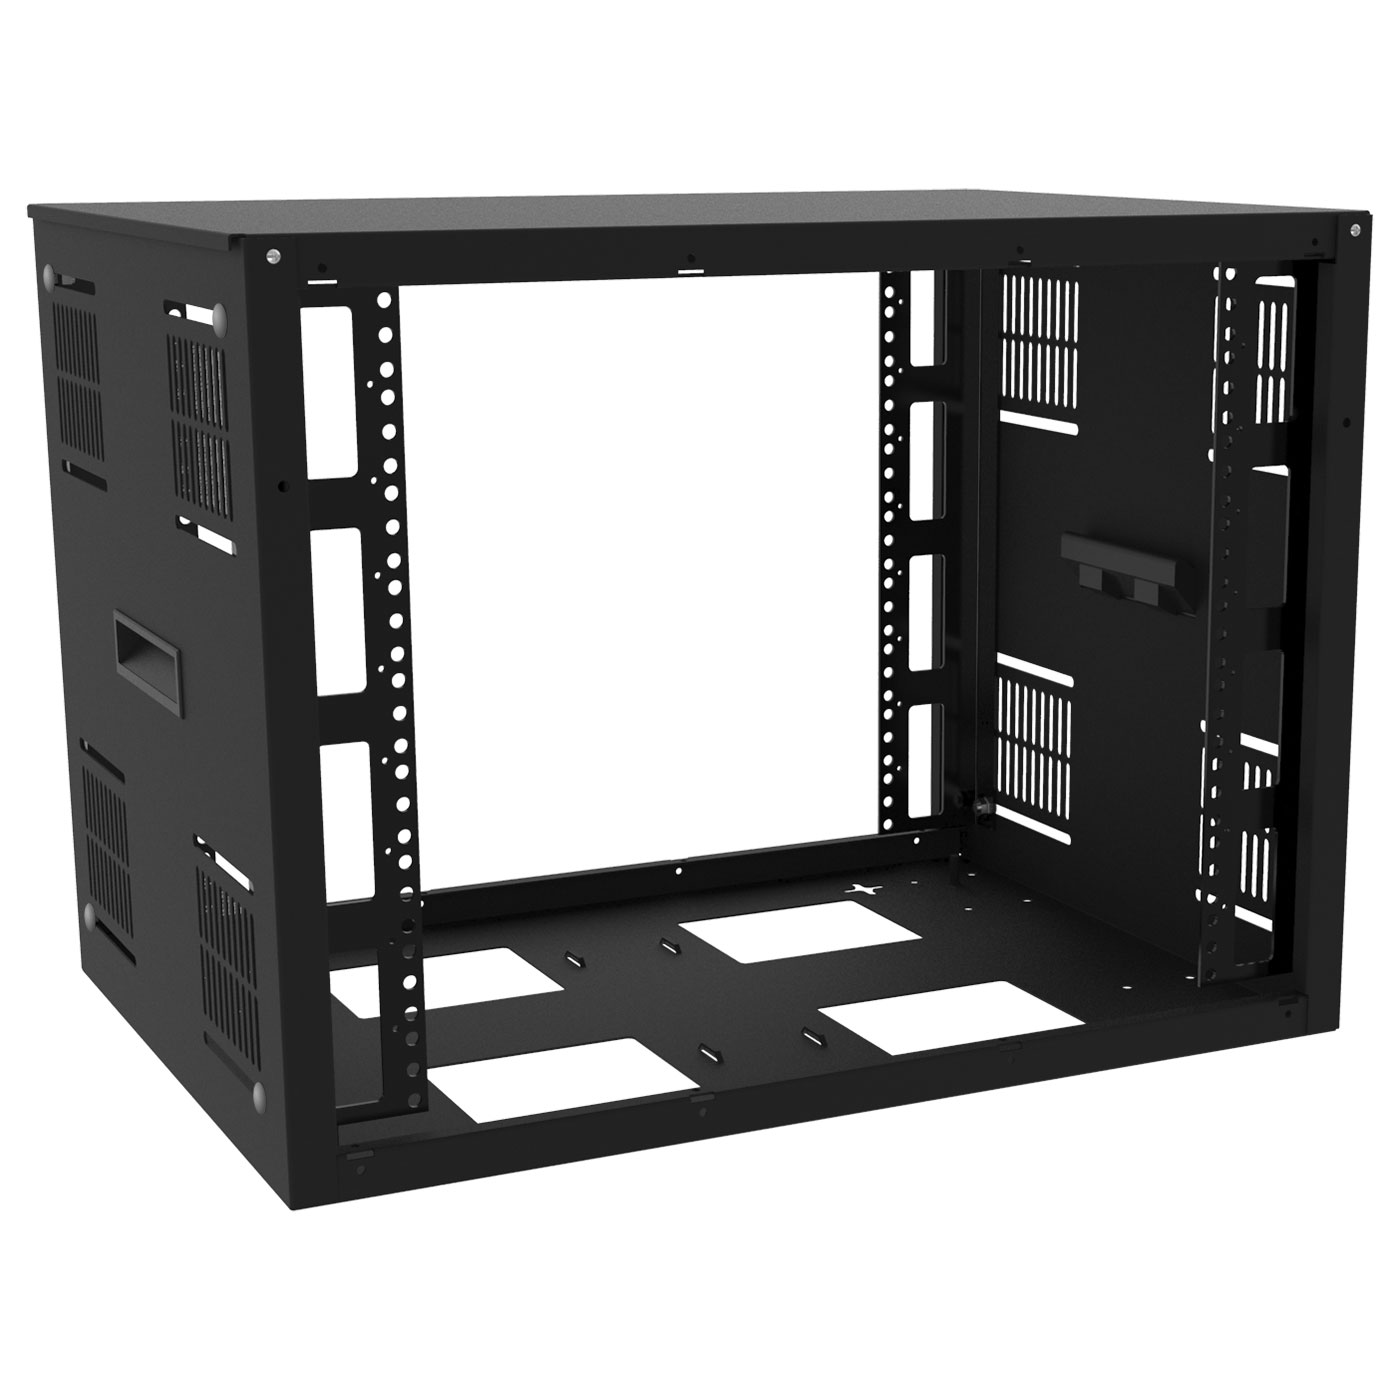 SDC246U36BK - SDC Series Multi-Use Wall Mount or Freestanding Rack